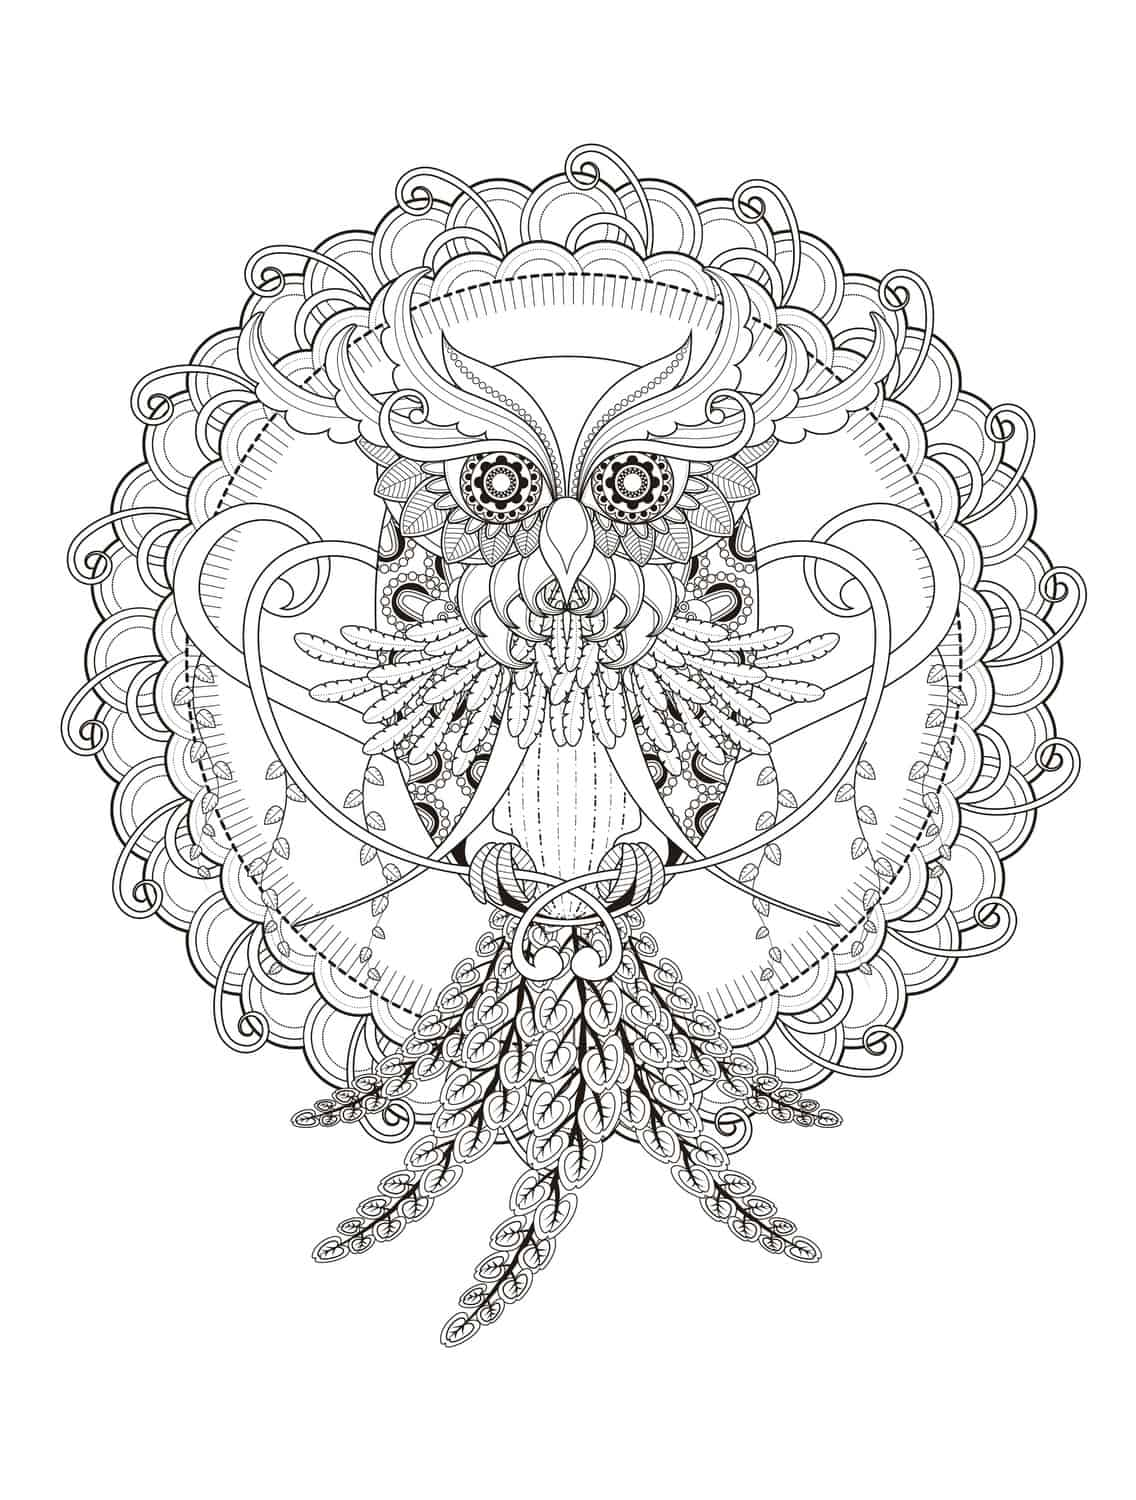 1000 Images About Colouring Pages On Pinterest Adult Coloring Pages Of Owls For Adults